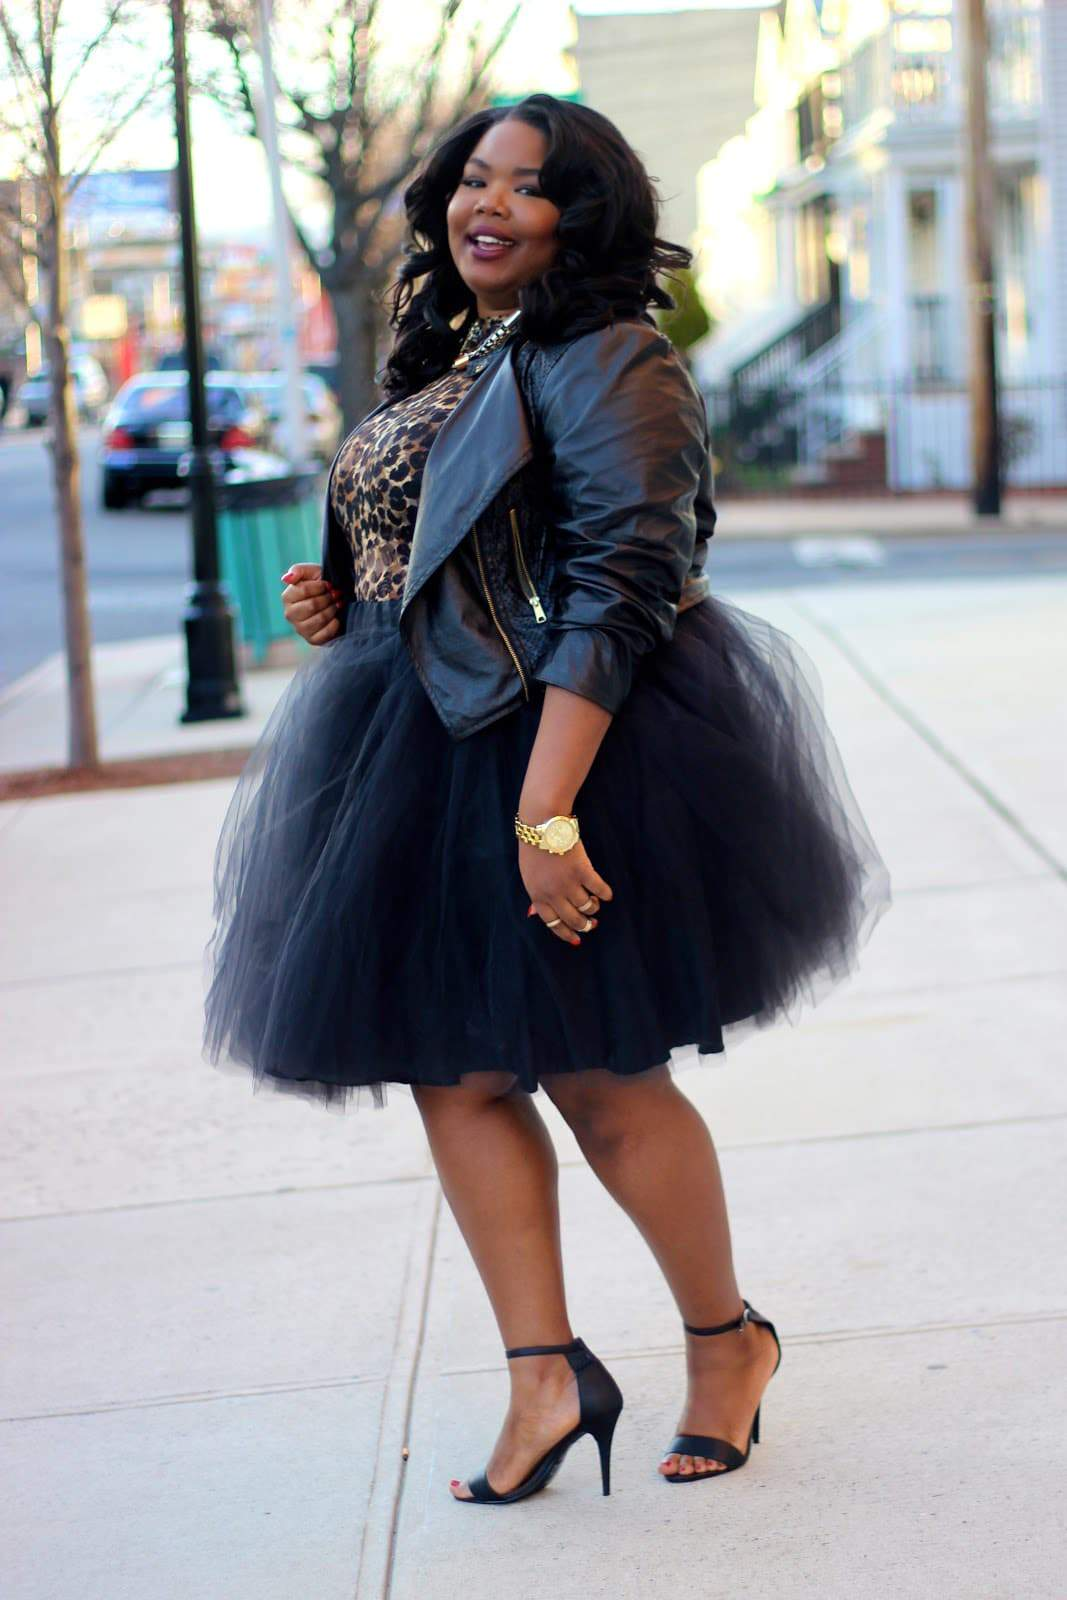 Plus Size Blogger Spotlight- Chante of Everything Curvy and Chic